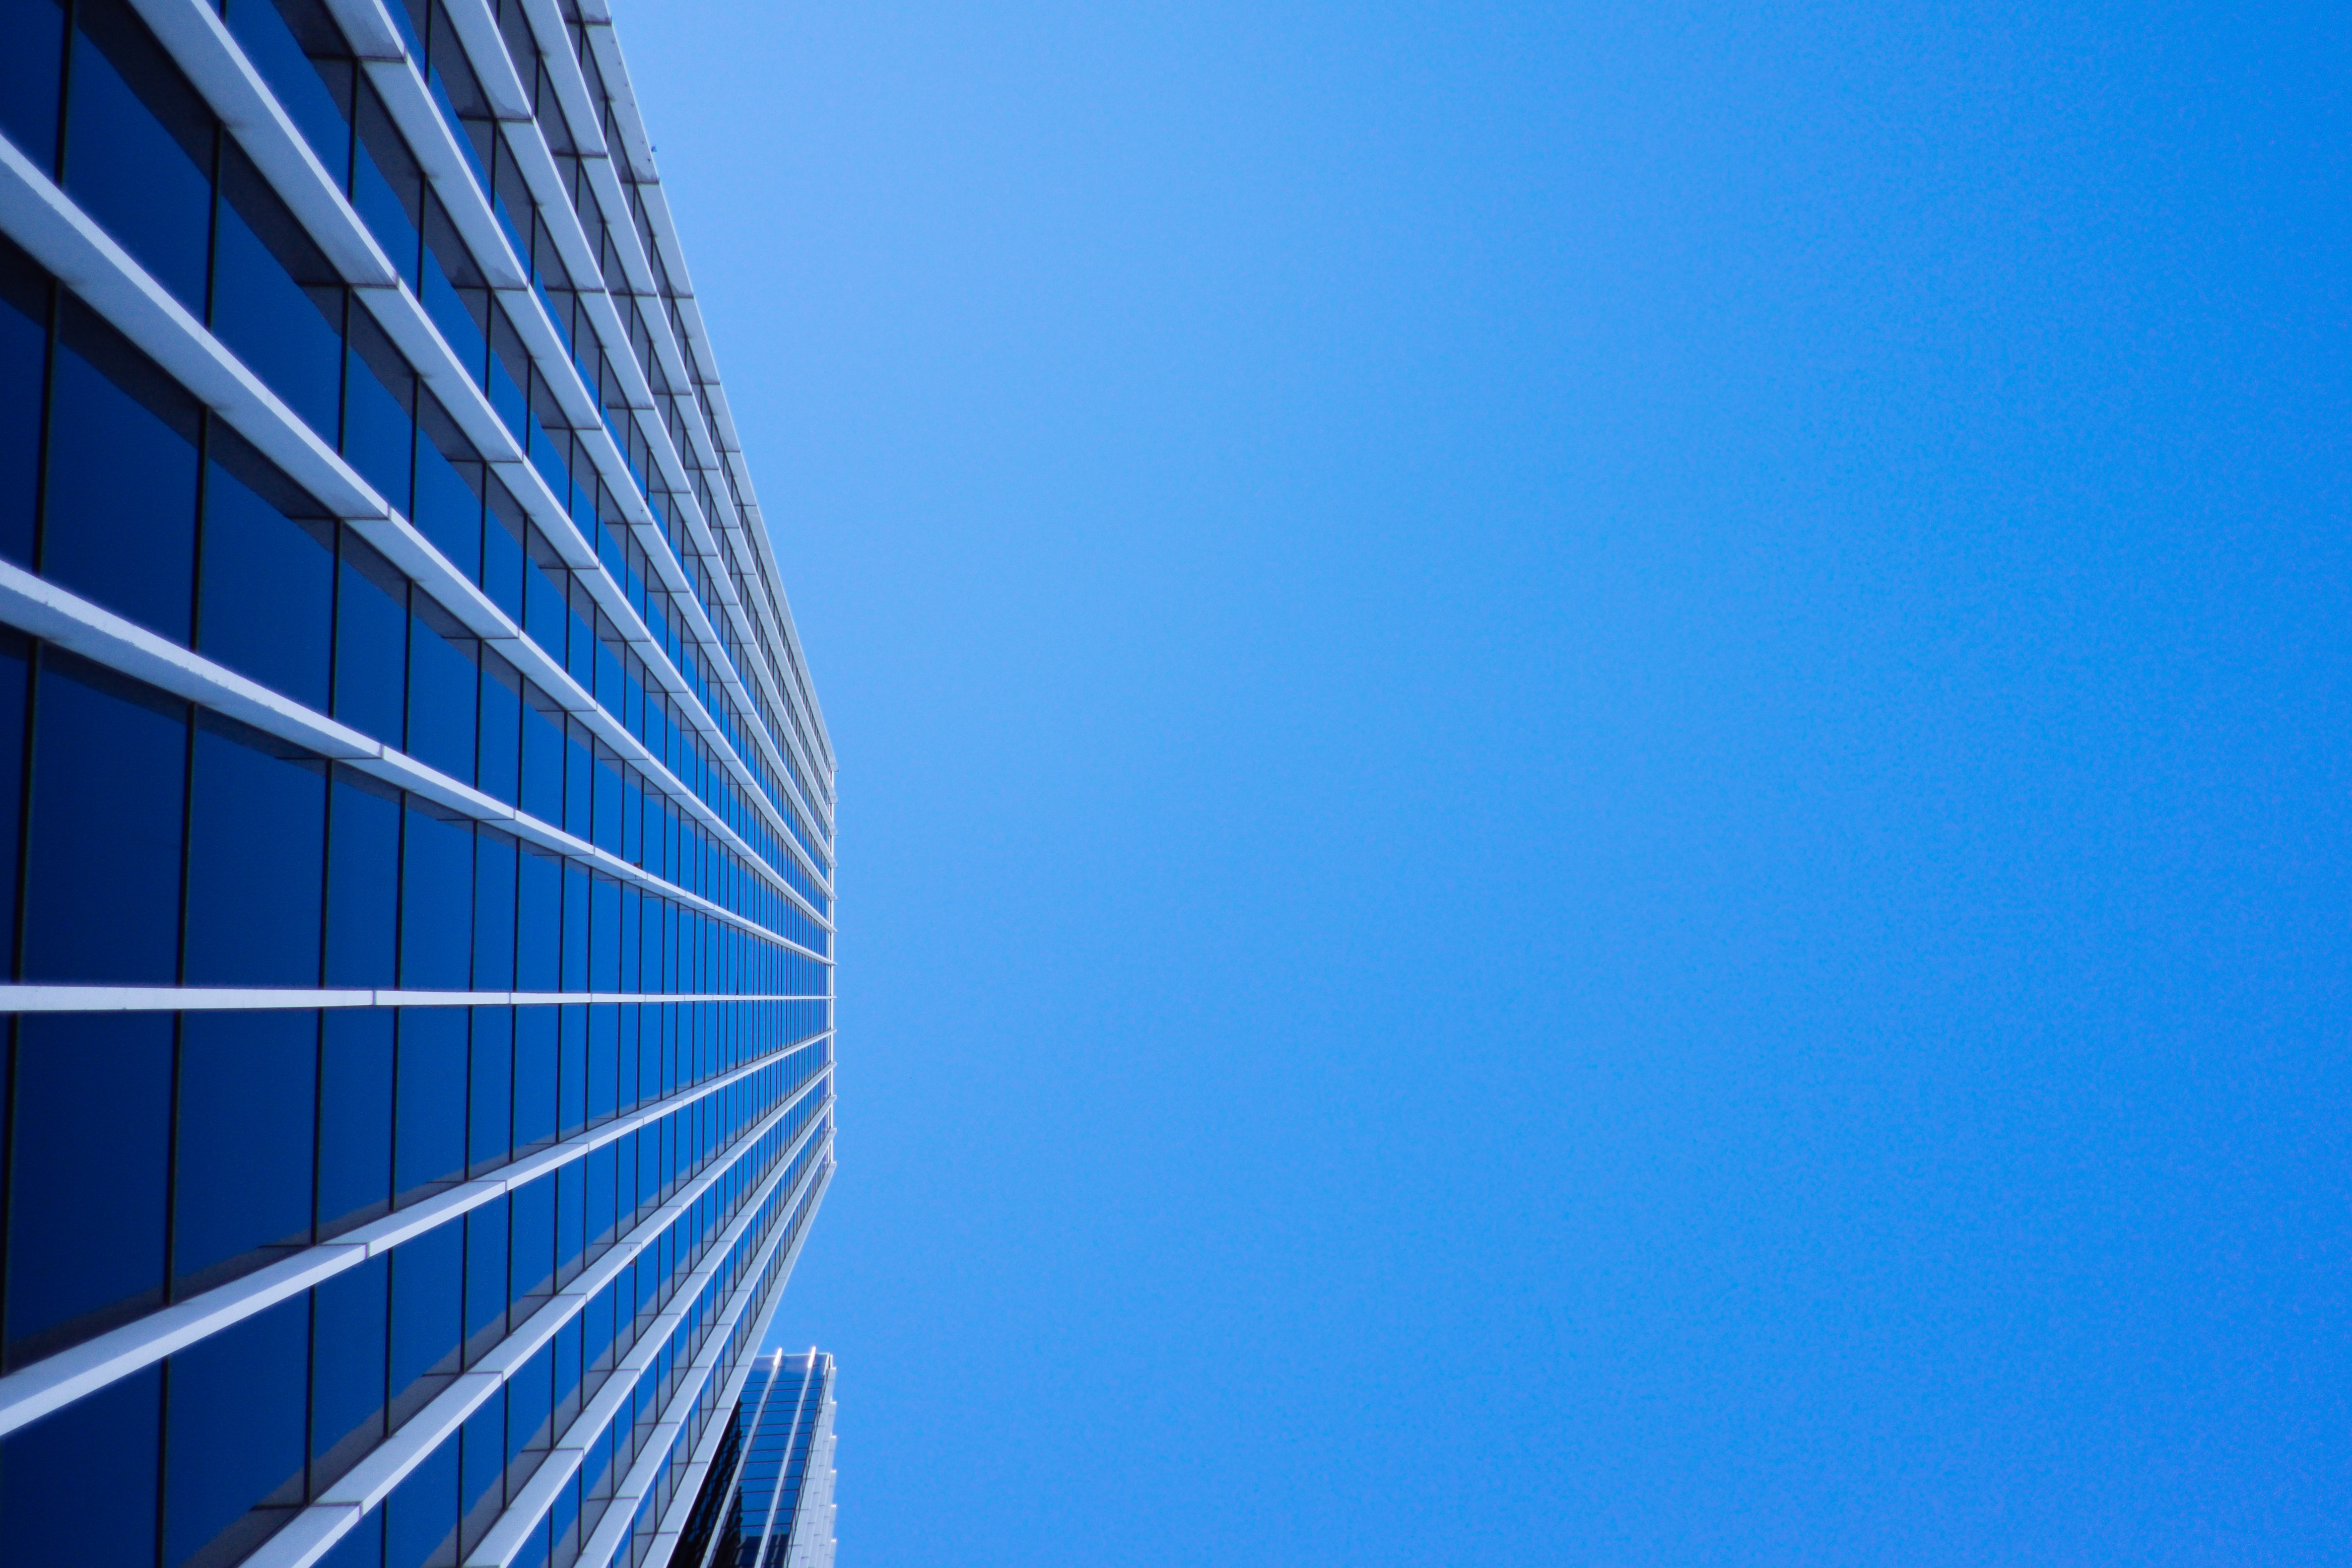 low-angle photography of curtain glass building under blue sky